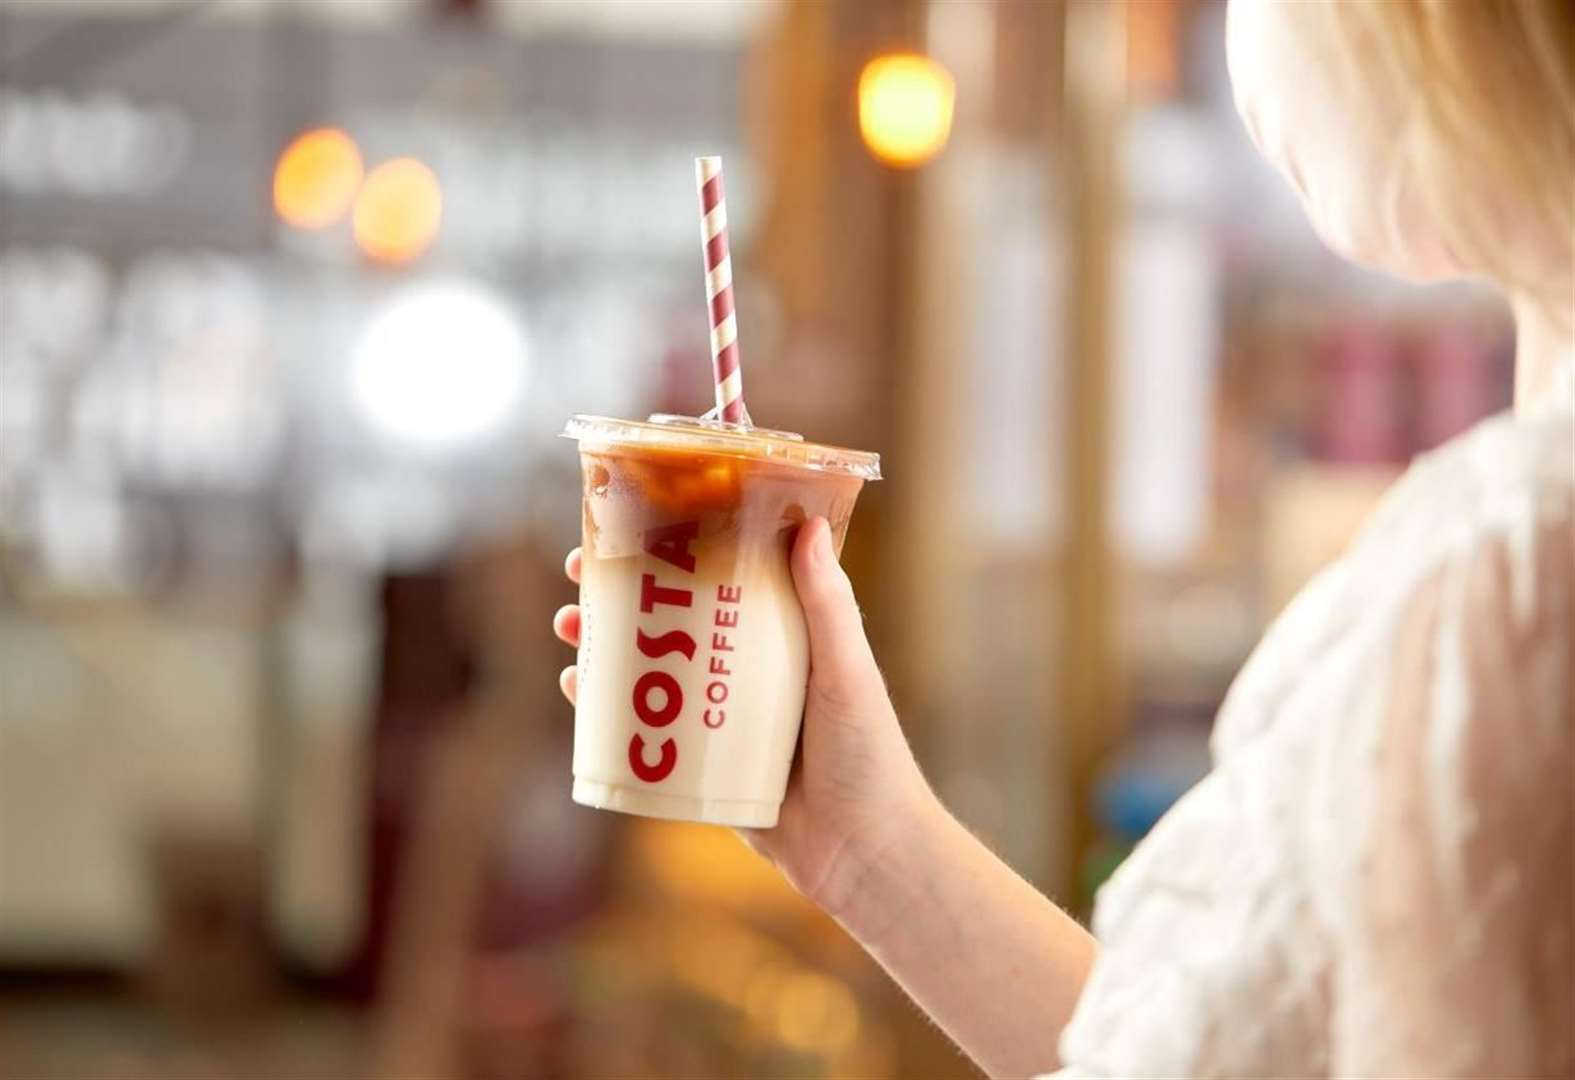 Costa's 50p drinks are back this week